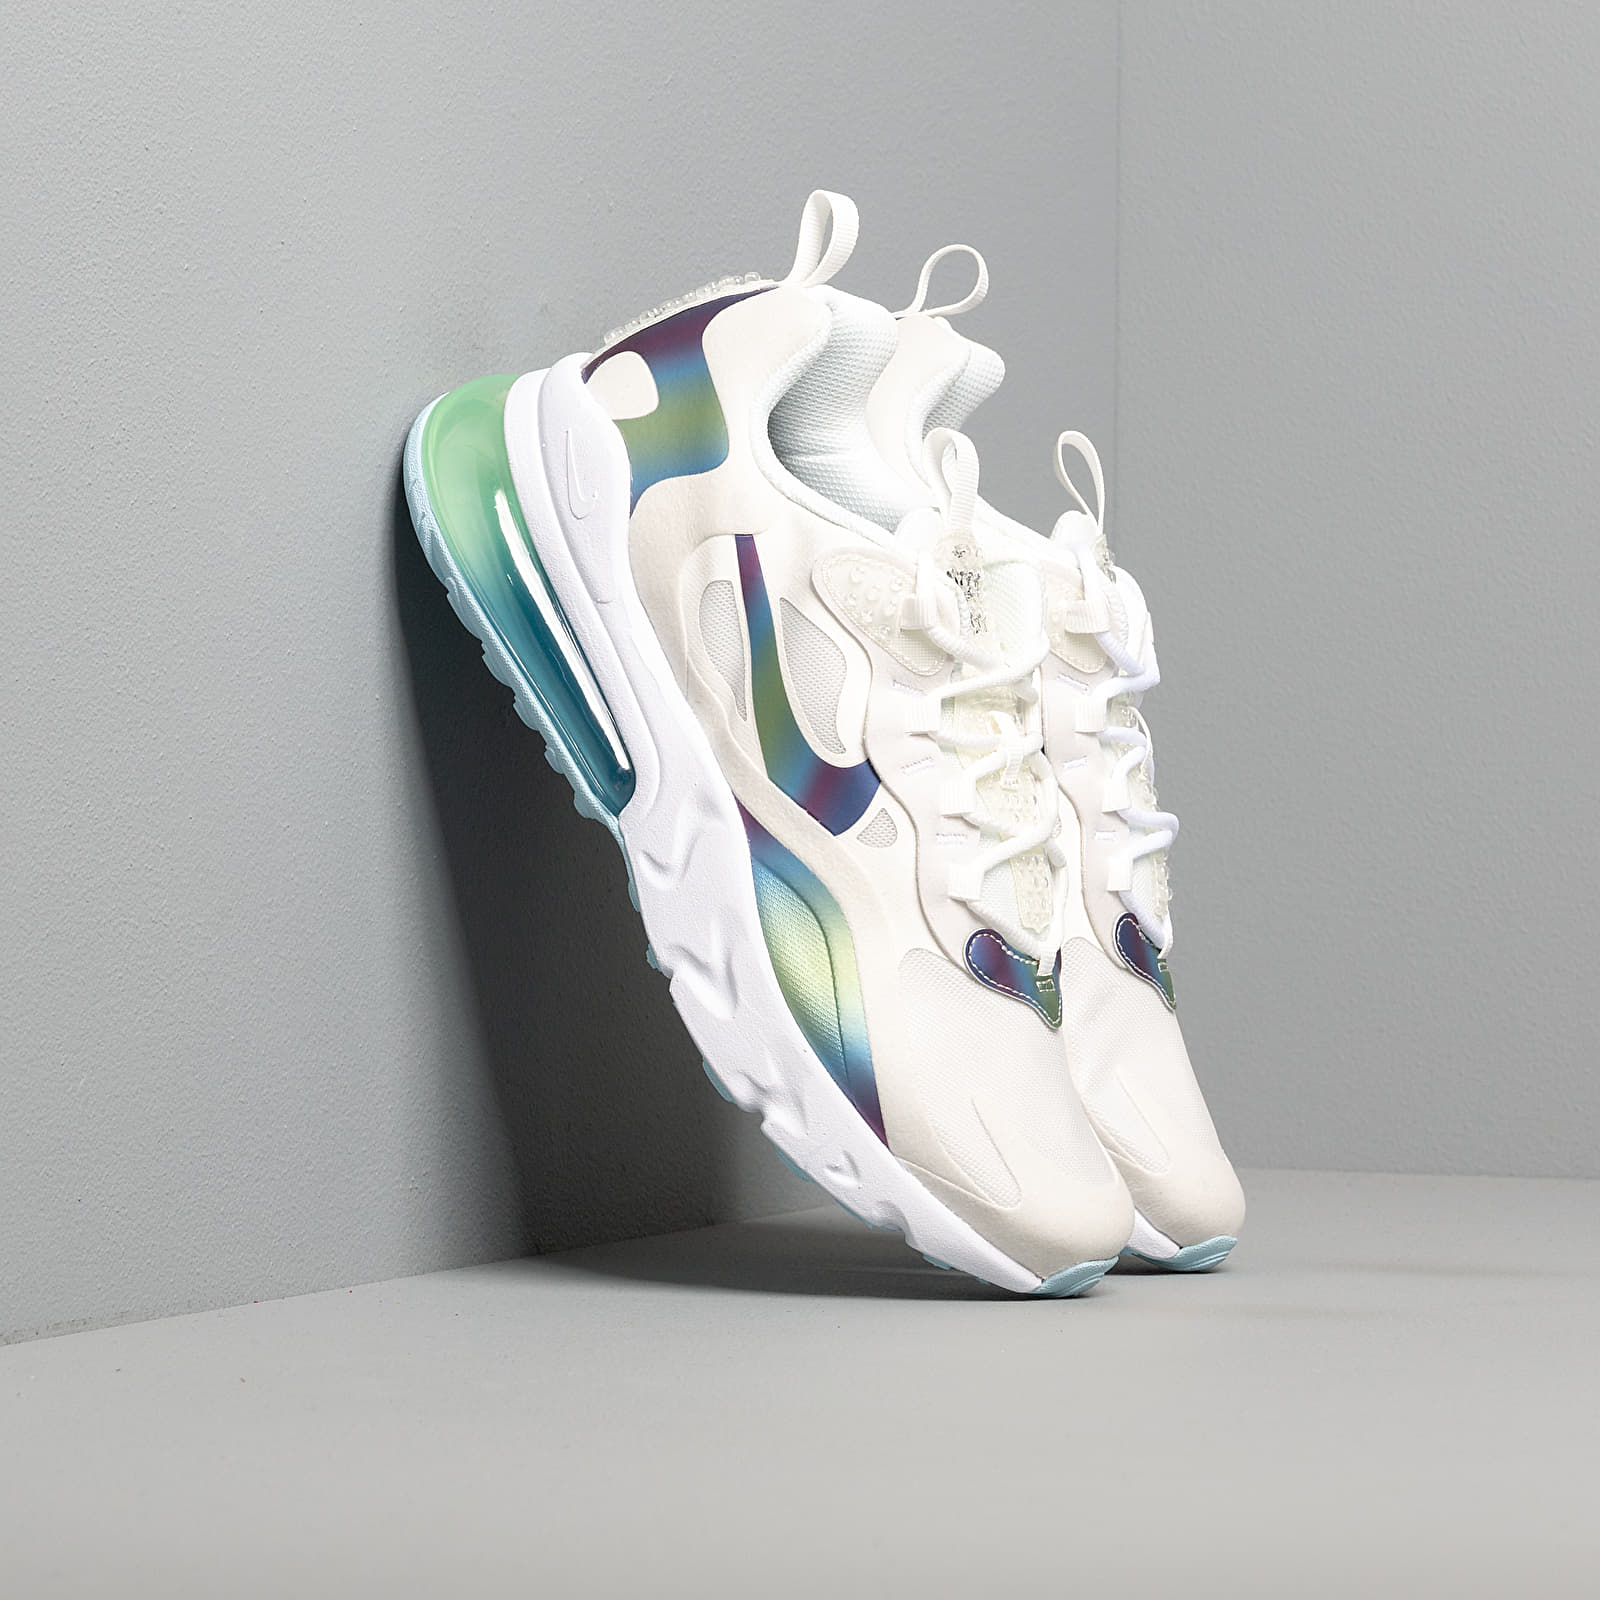 Zapatillas de niño Nike Air Max 270 React 20 (GS) Summit White/ Multi-Color-Platinum Tint